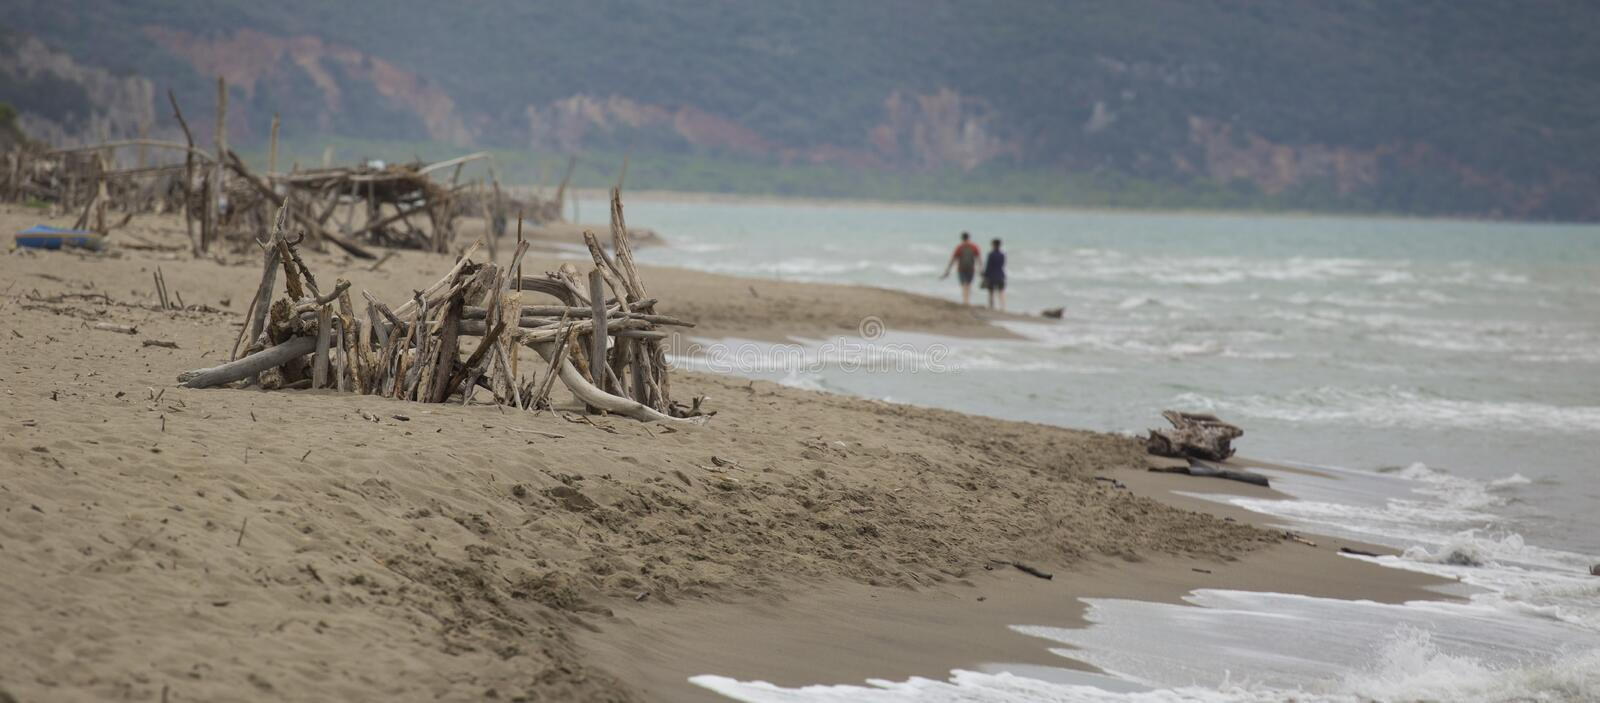 Image of a desolate beach with stacked wooden logs royalty free stock image